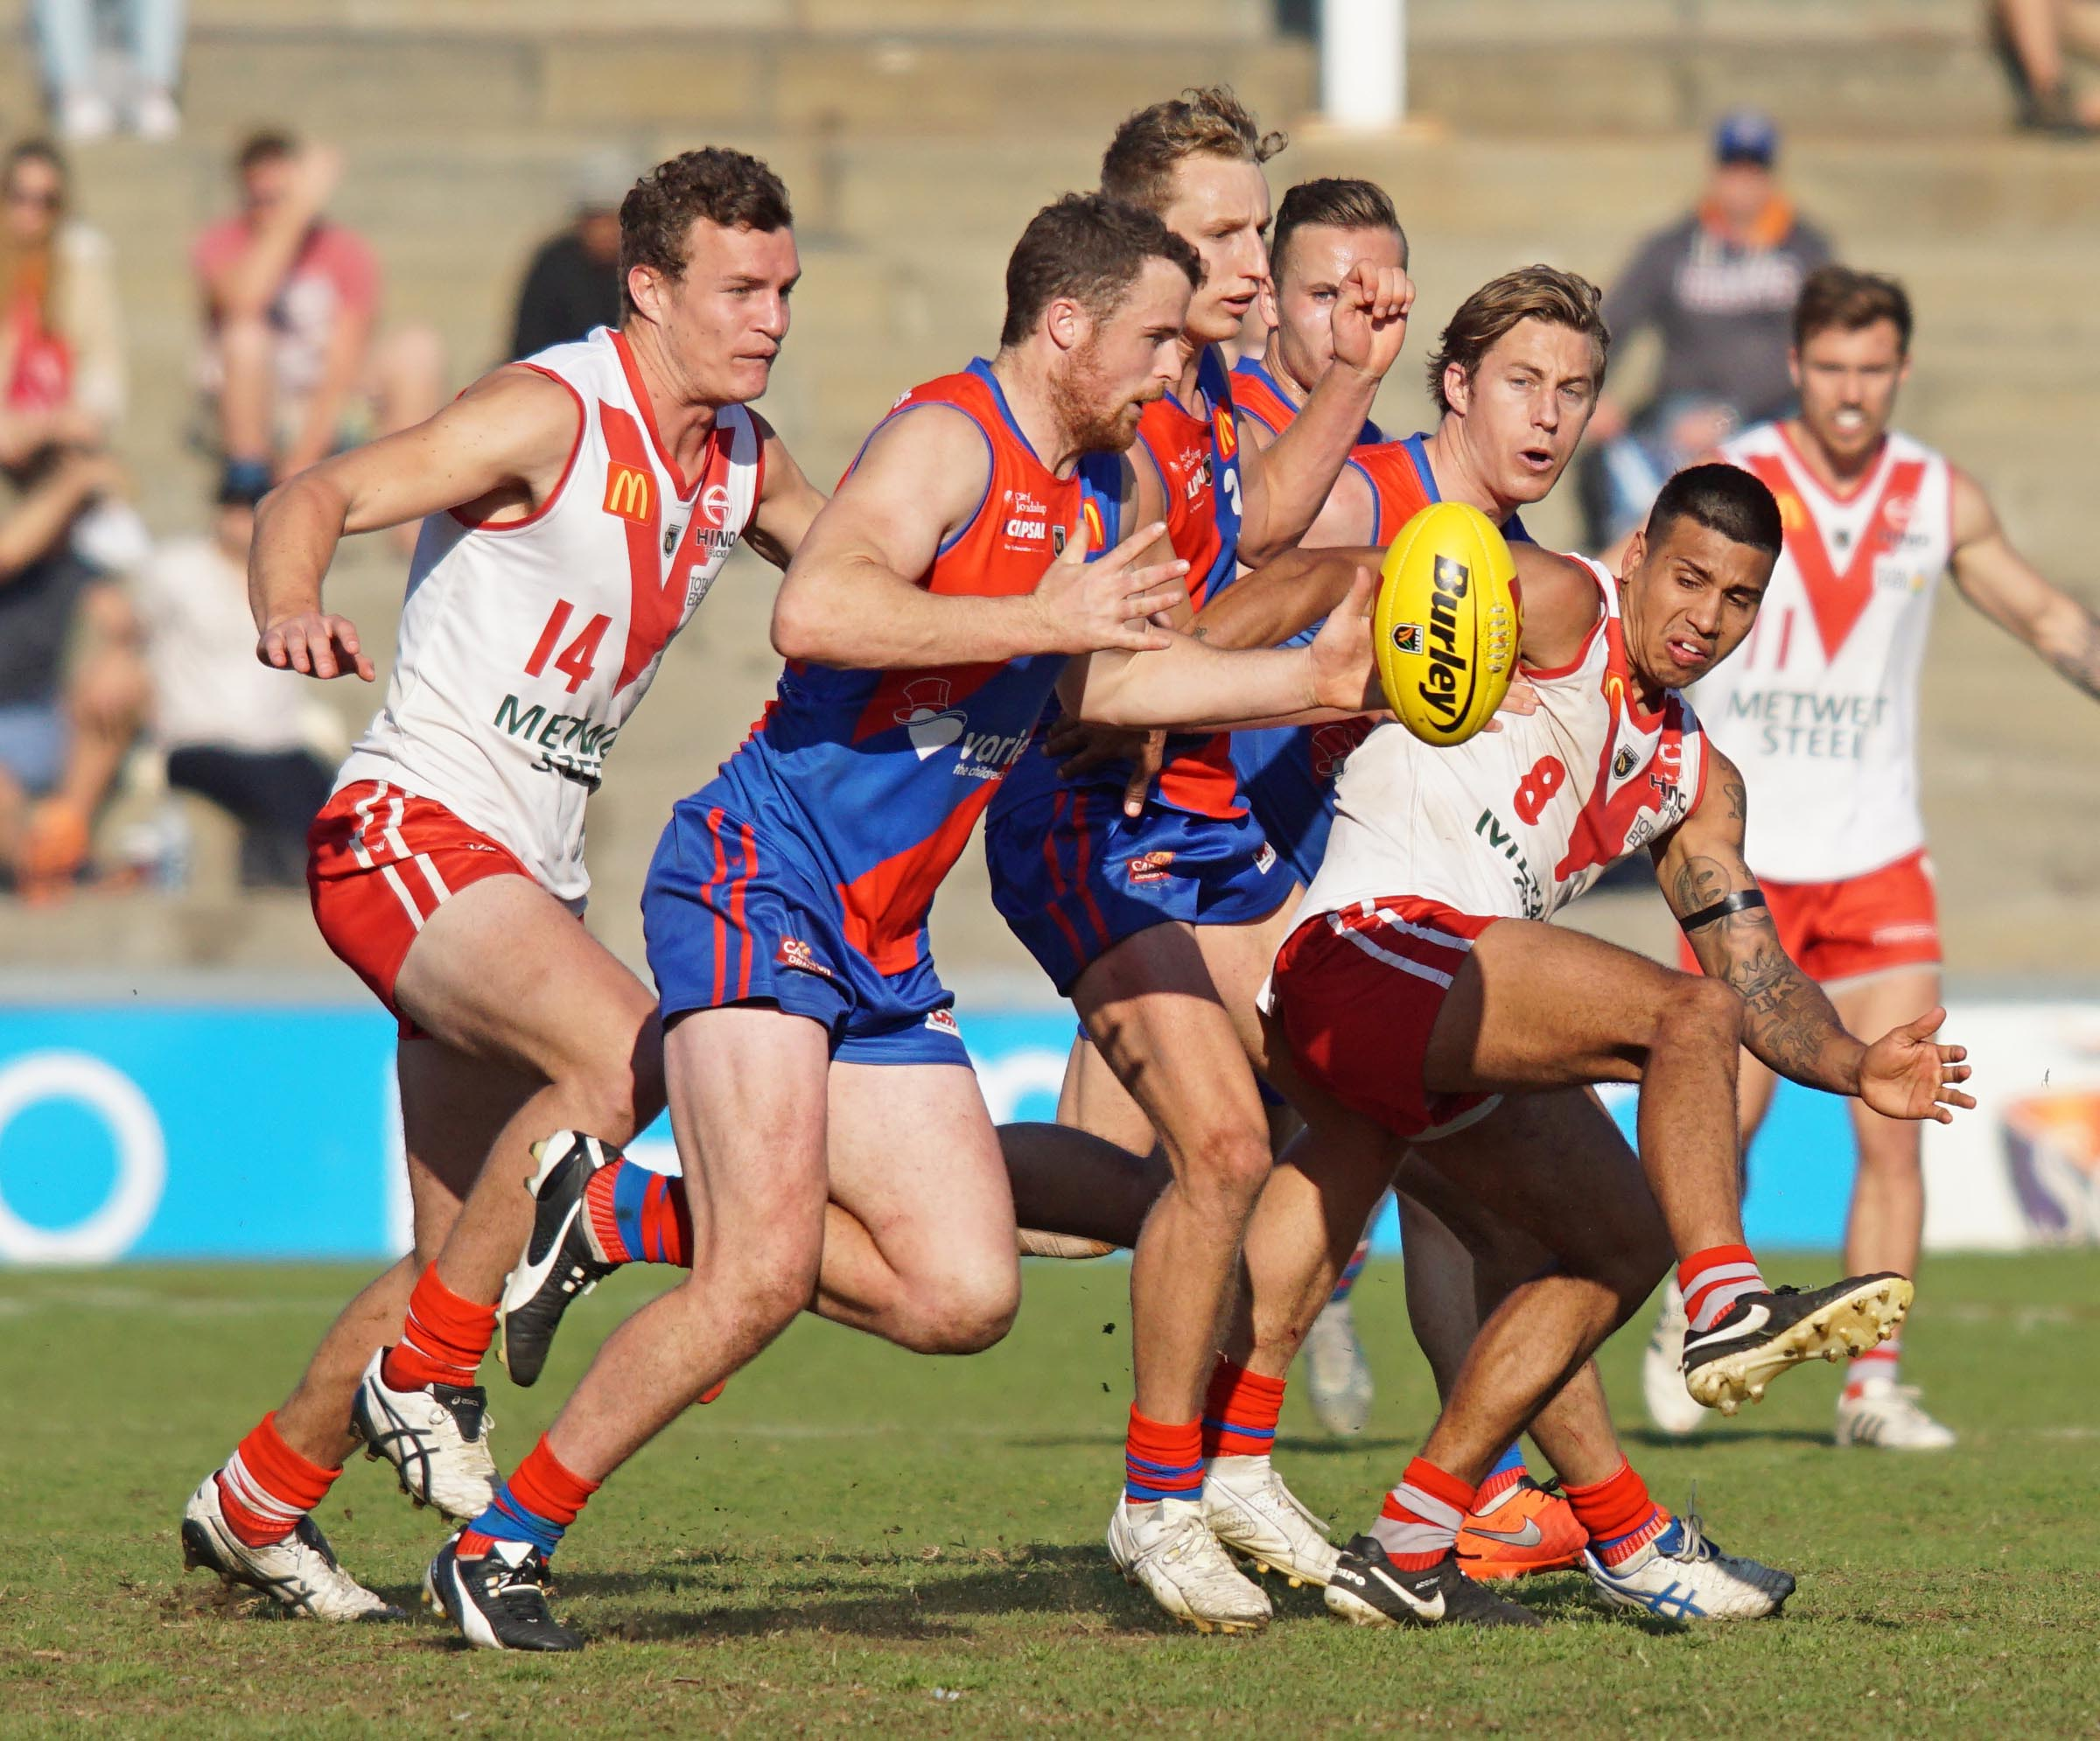 Michael Lourey takes possession in the 2016 qualifying final, which South Fremantle won by 52 points. Picture: Matt Beilken